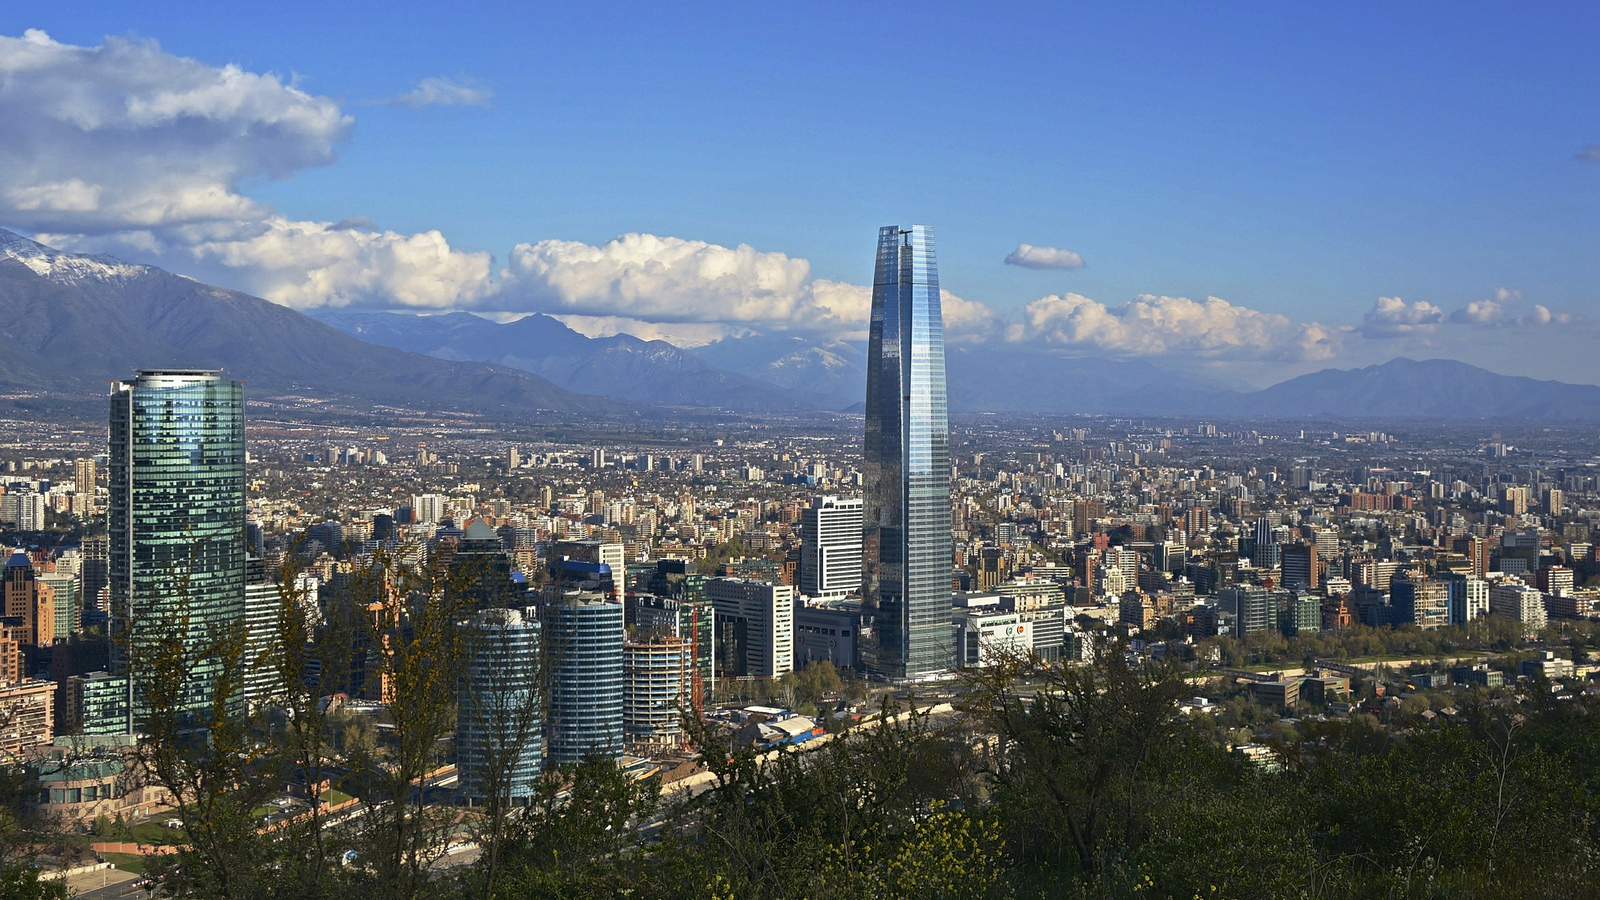 santiago-de-chile-oriente-backgrounds